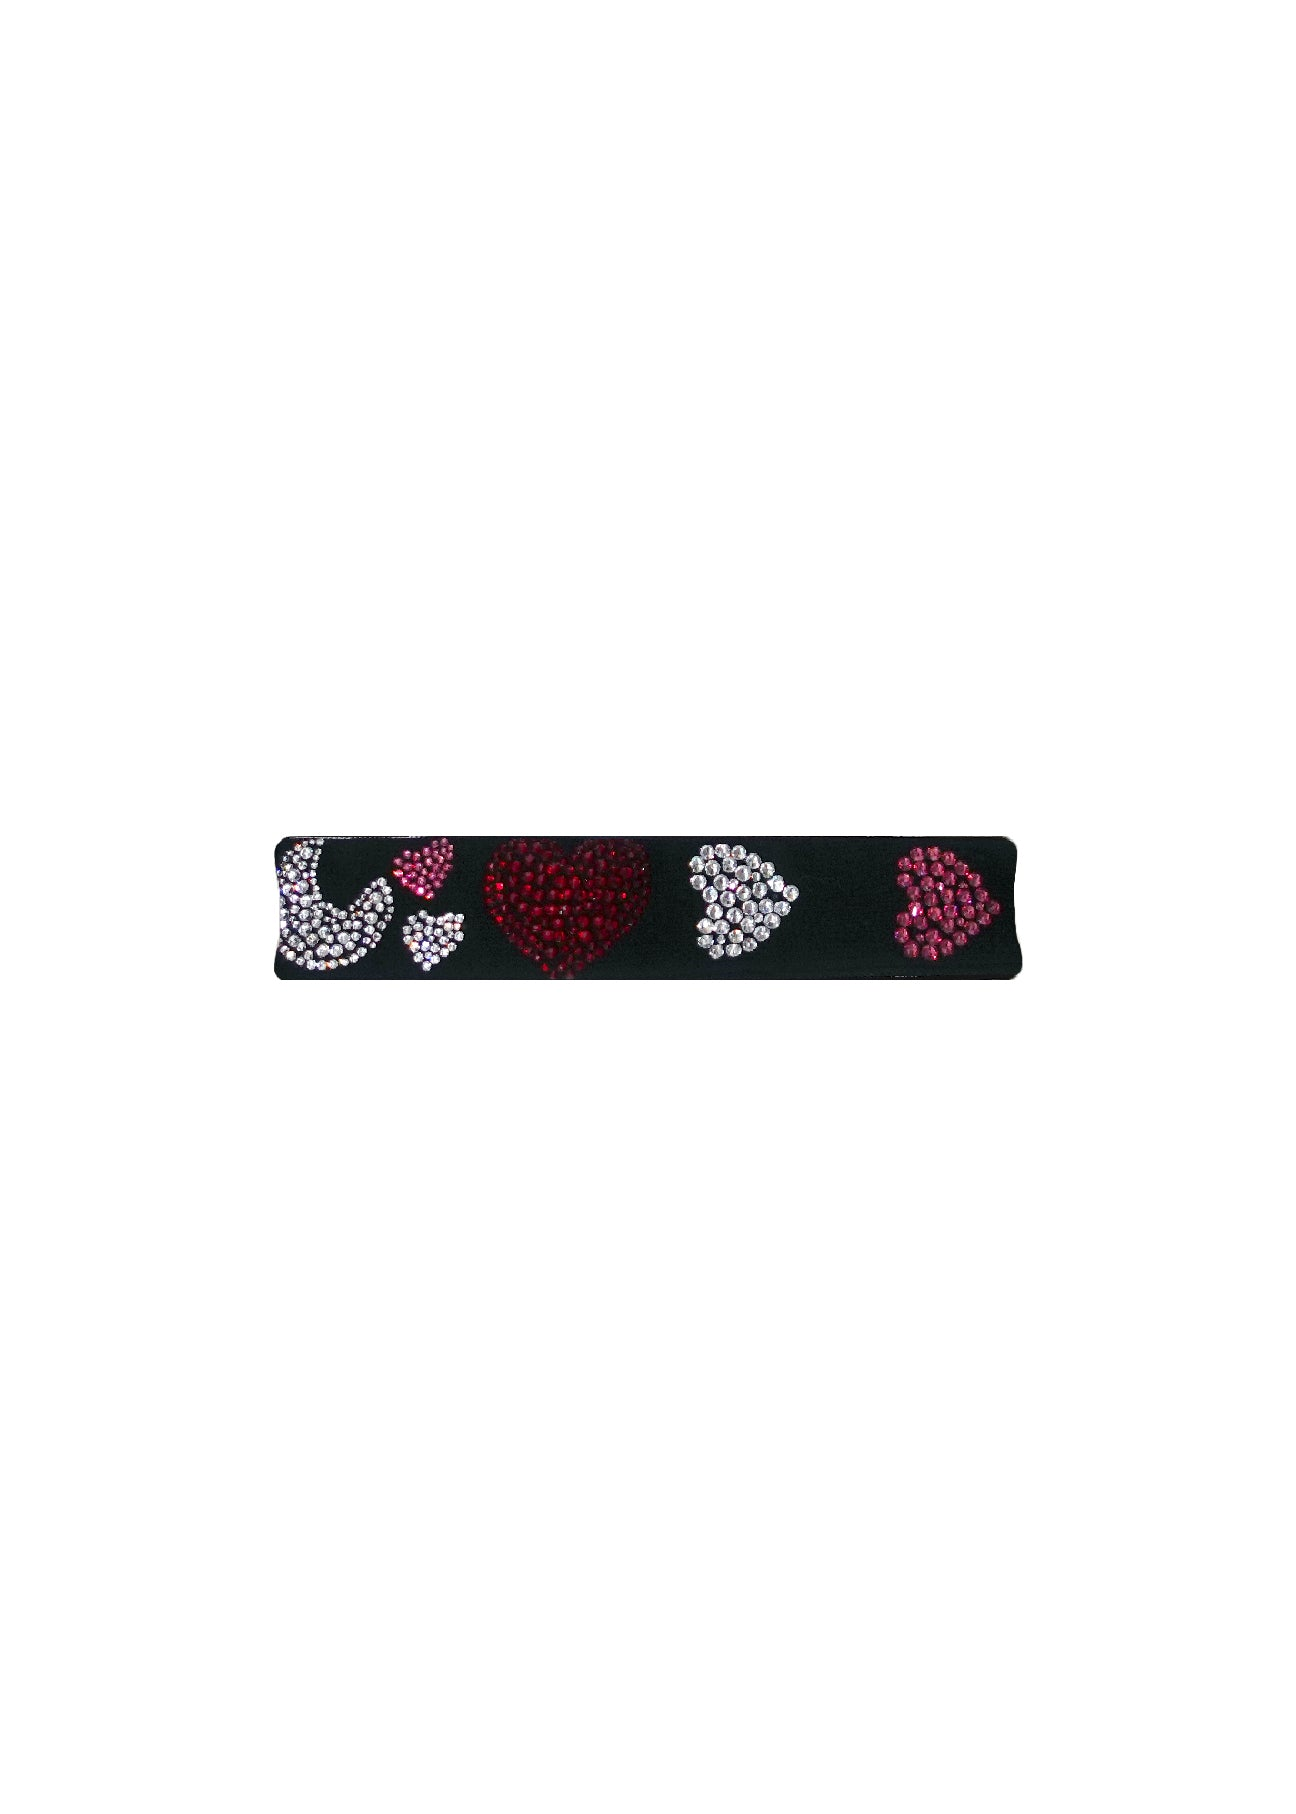 'Stars, Moon, and Hearts' Belt - Accessories - Libertine